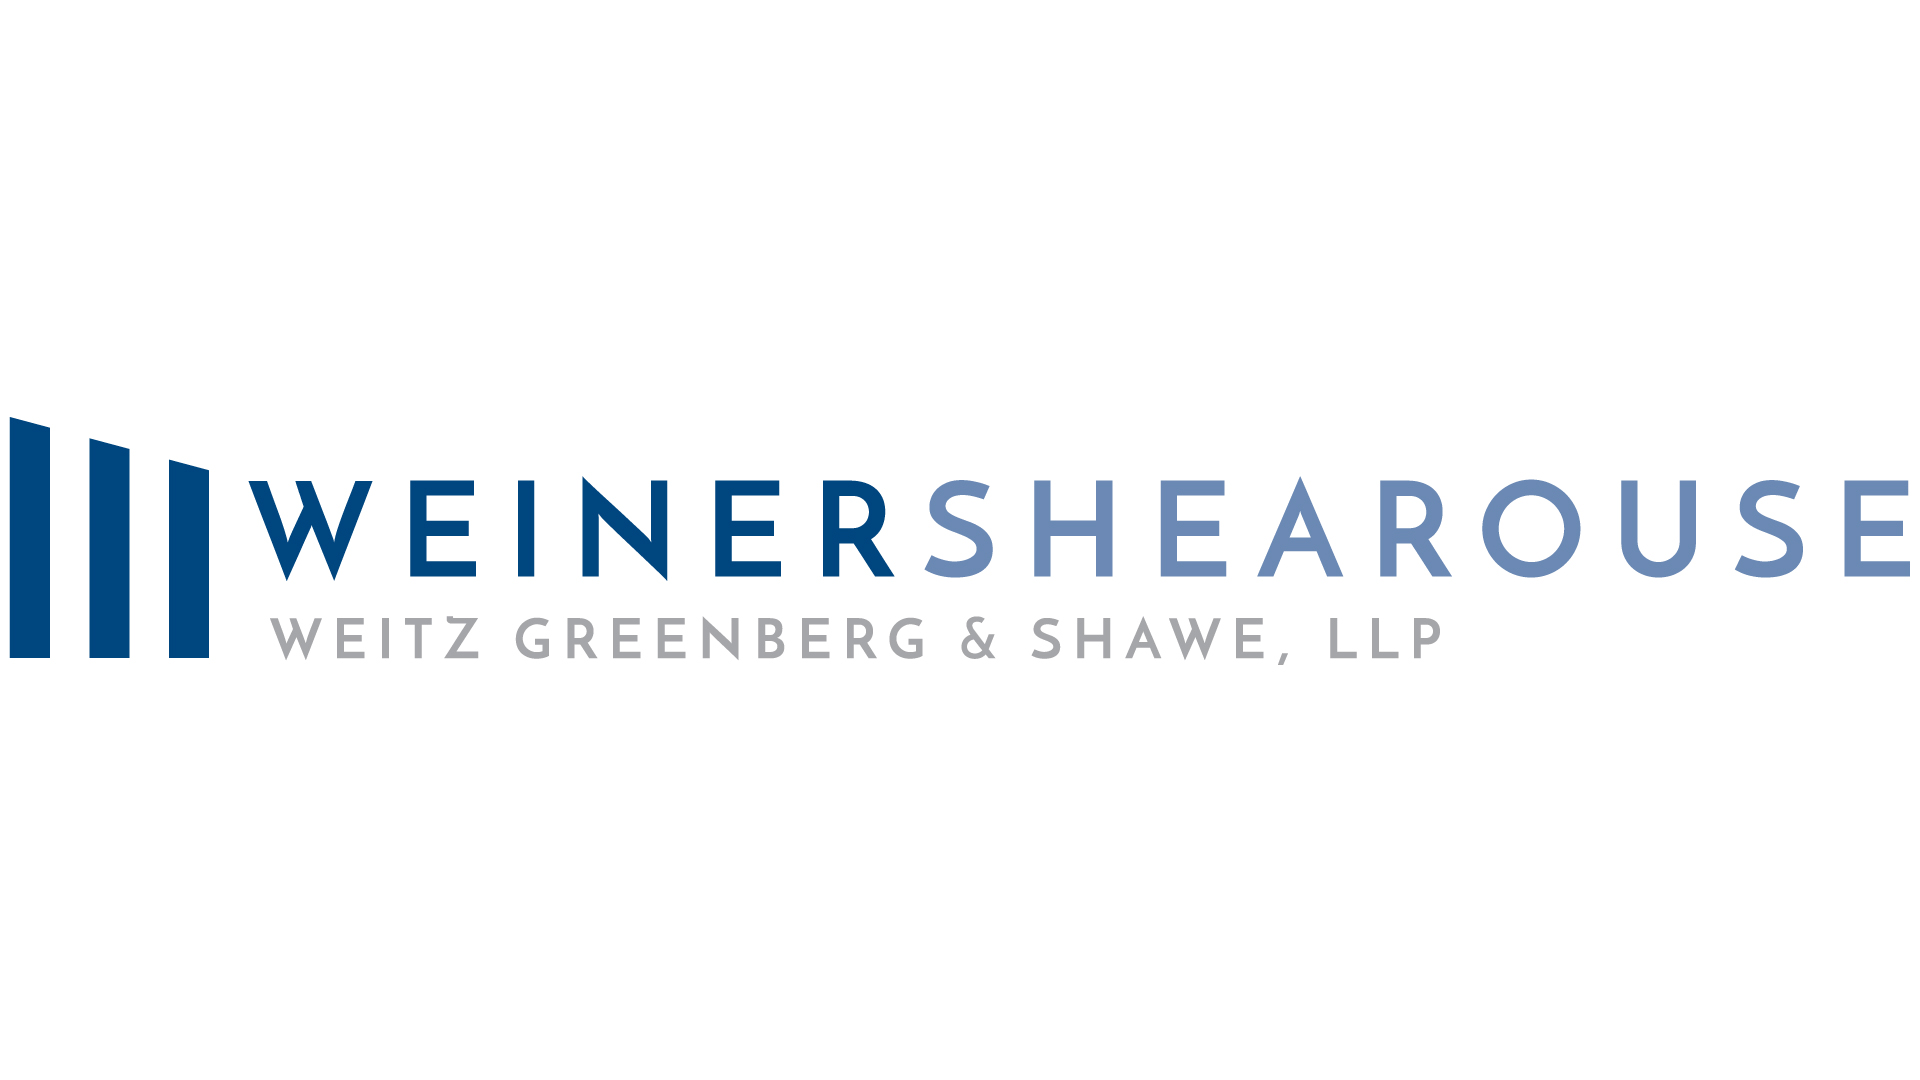 Weiner, Shearouse, Weitz, Greenberg and Shawe Logo Desgin